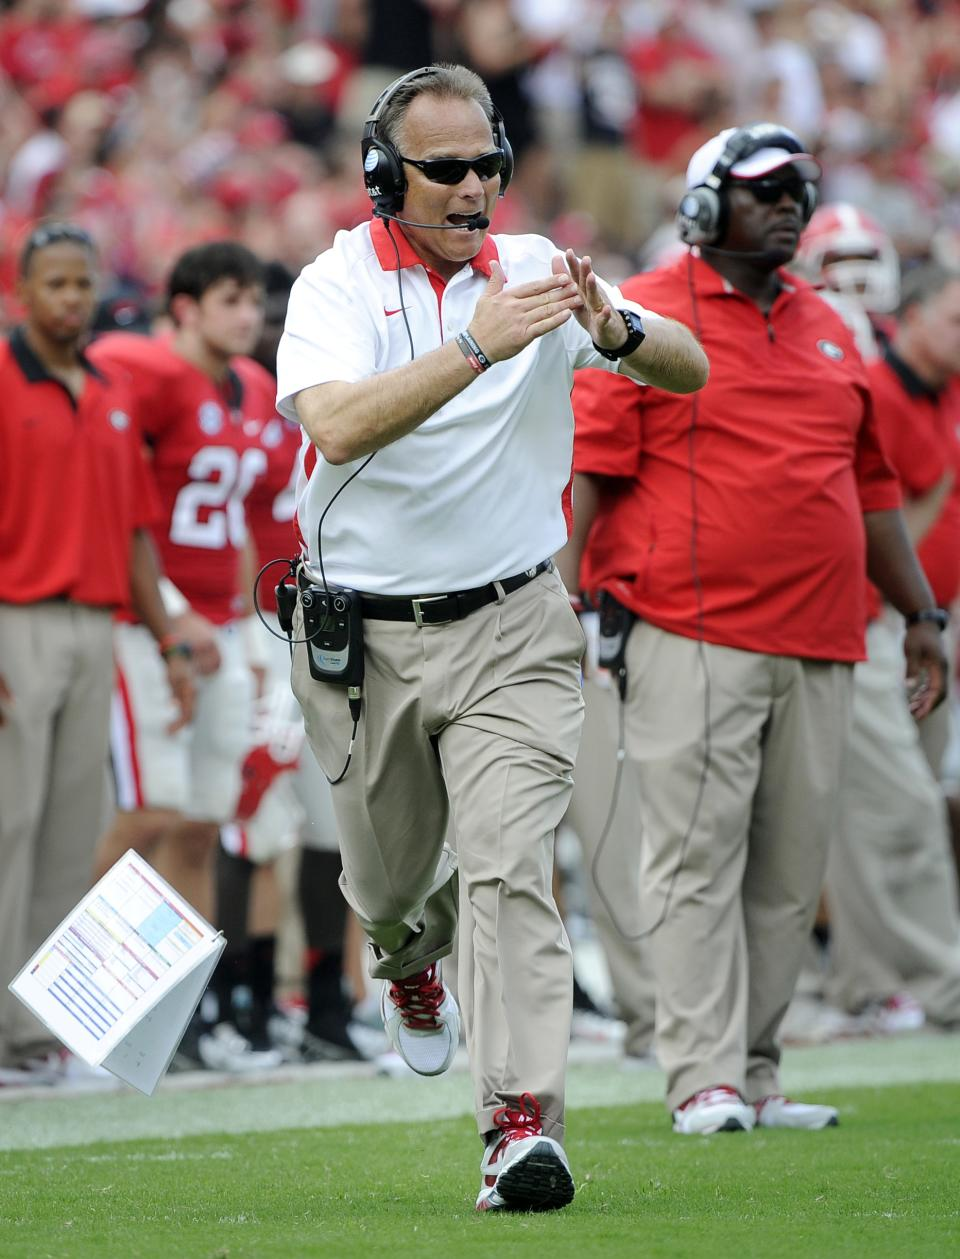 FILE - In this Sept. 1, 2012, file photo, Georgia head coach Mark Richt drops his playbook as he calls a timeout against Buffalo during an NCAA college football game in Athens, Ga. Georgia faces Alabama in the SEC Championship on Saturday. (AP Photo/John Amis, File)